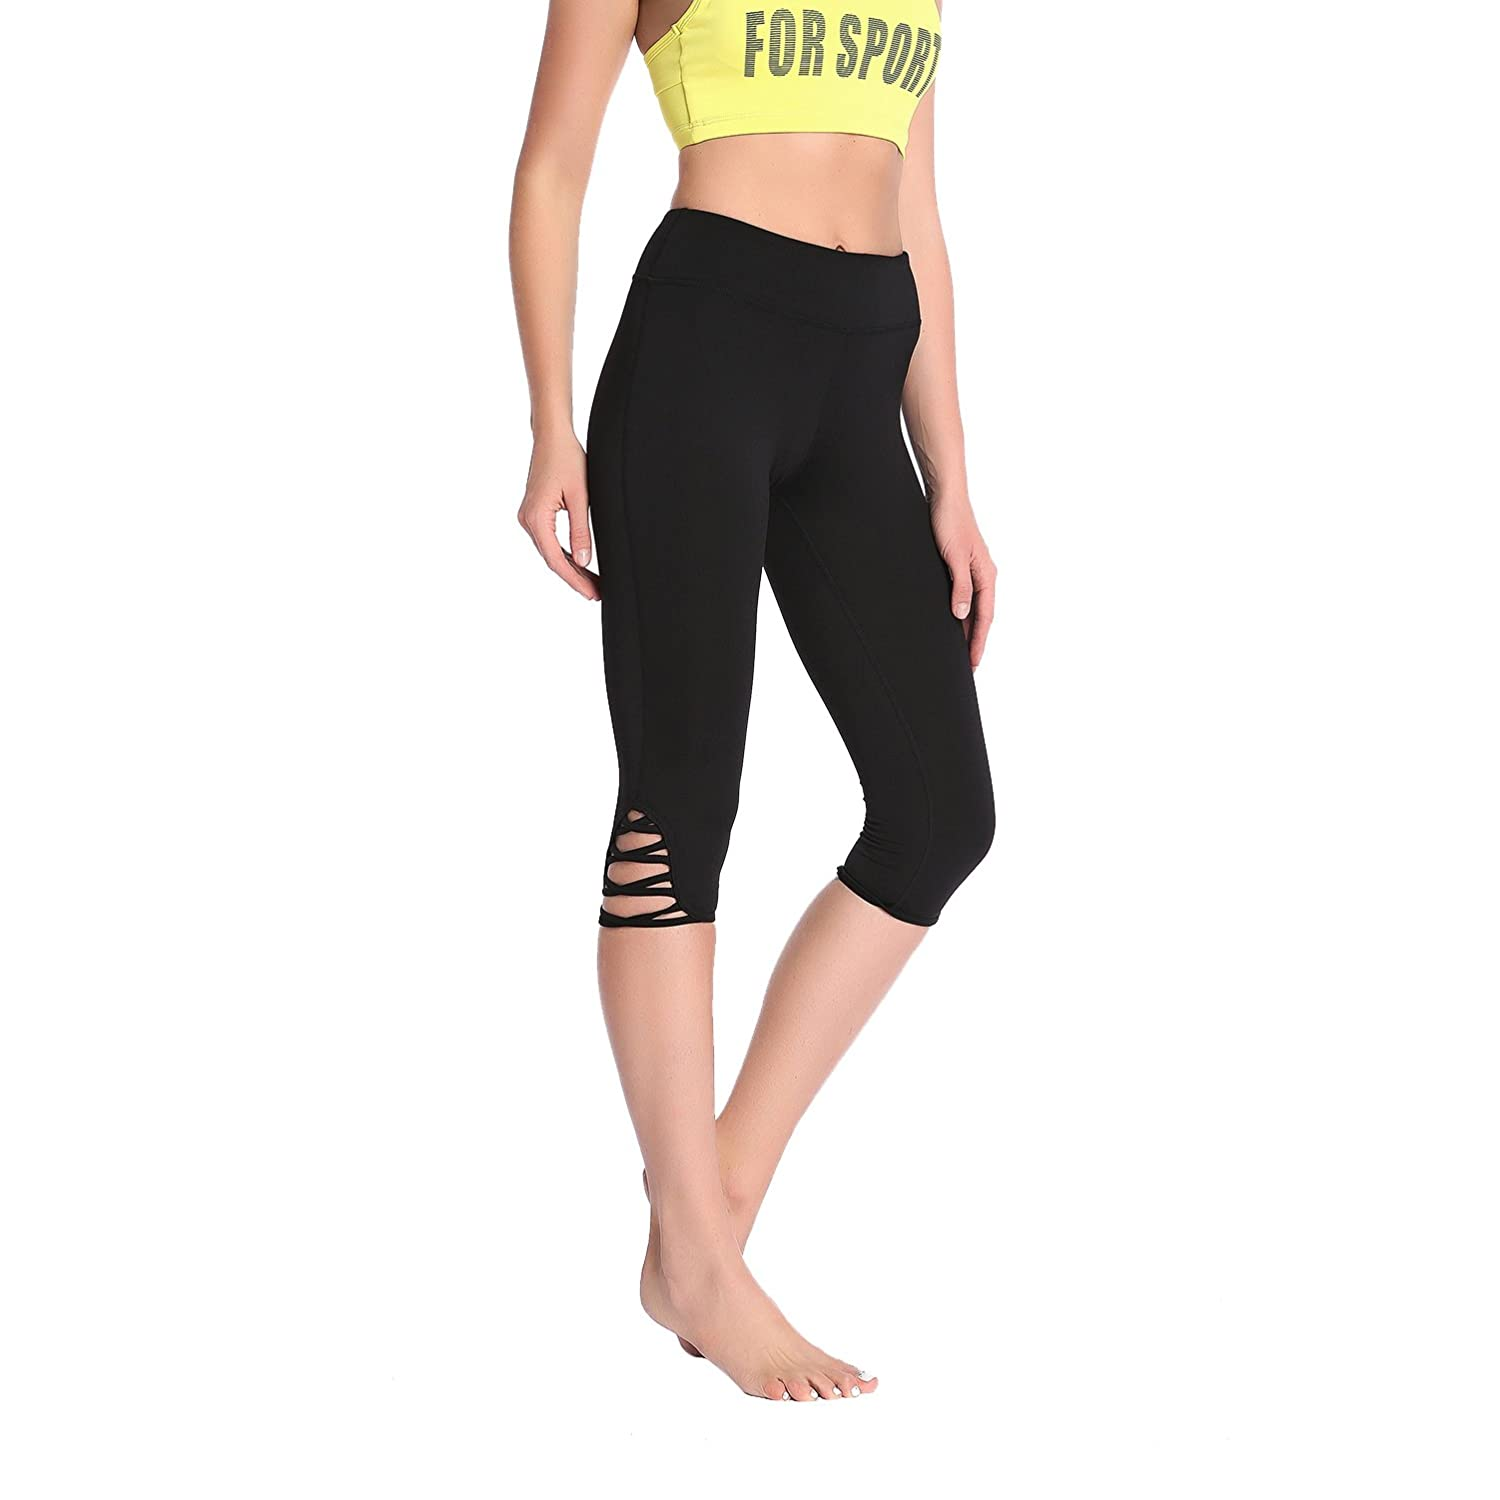 5be53c1e9f Crisscross Strappy Workout Leggings with Hidden Pocket Yoga Pants for  Women, Pants - Amazon Canada